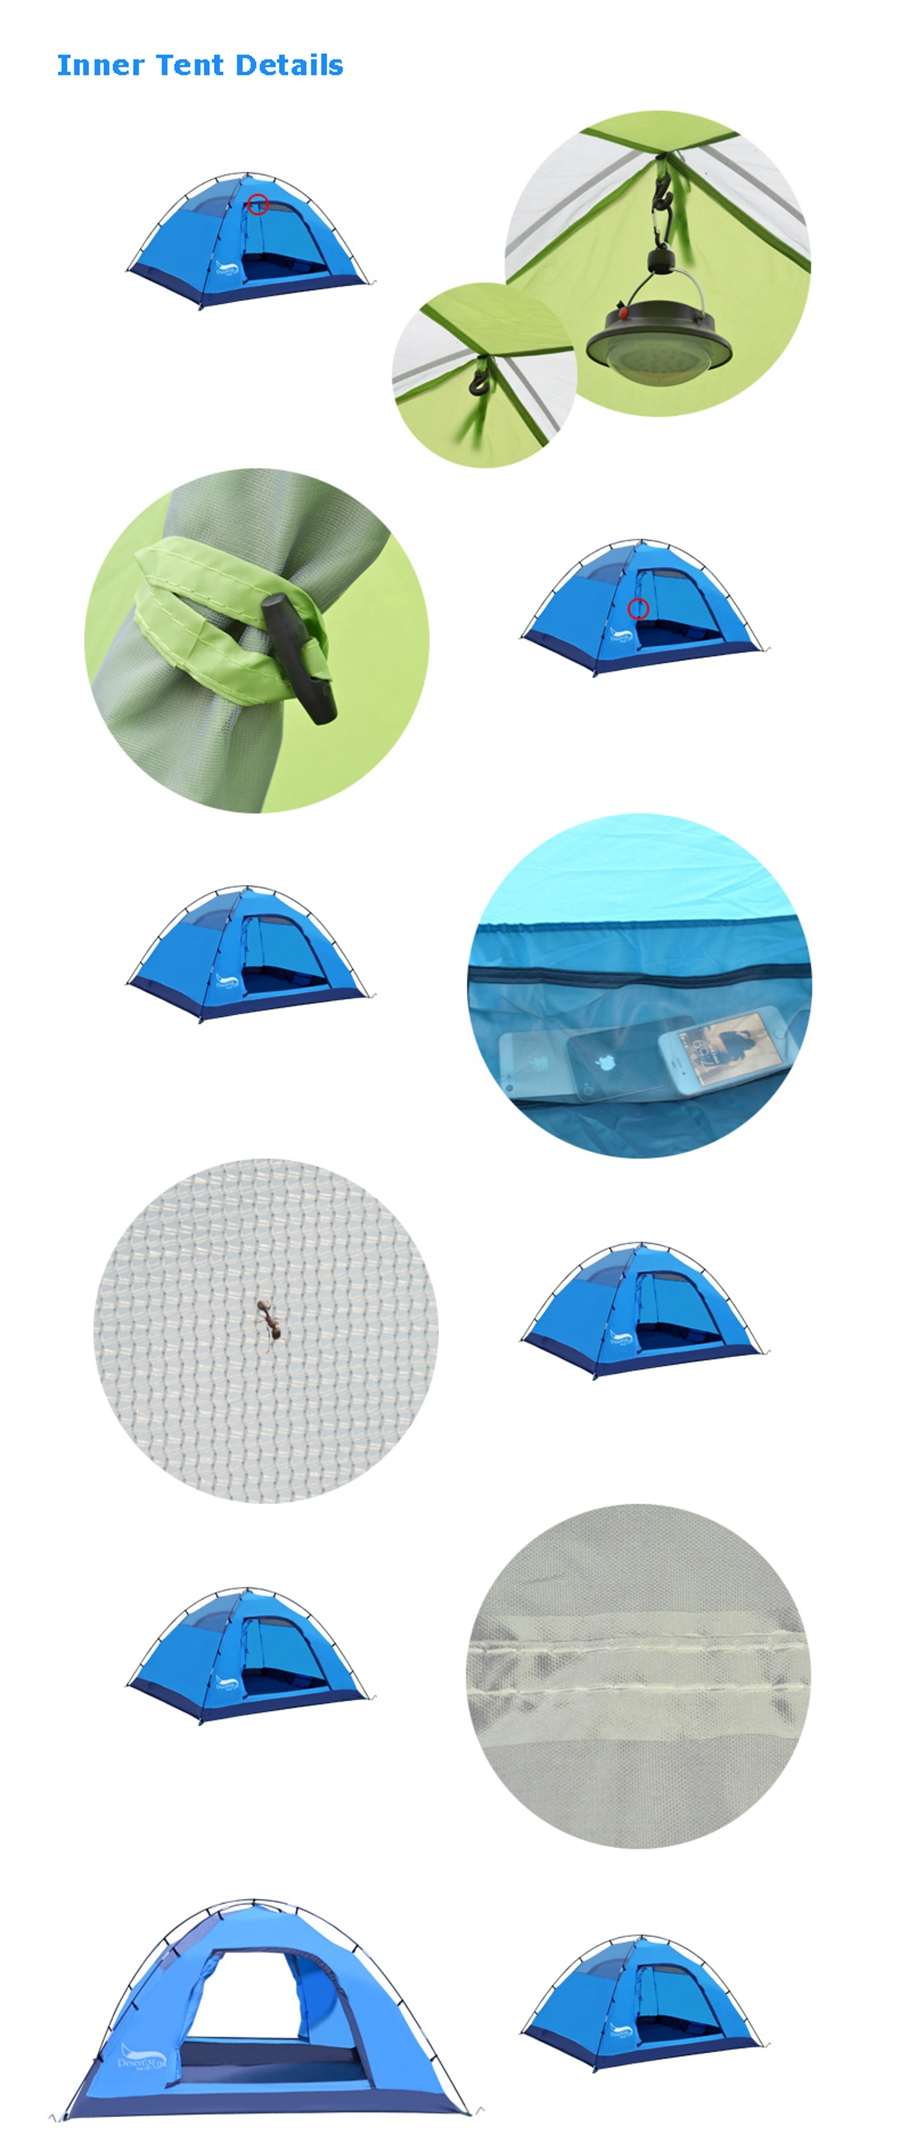 Desert&Fox Automatic Camping Tent, 3-4 Person Family Tent Double Layer Instant Setup Protable Backpacking Tent for Hiking Travel 9